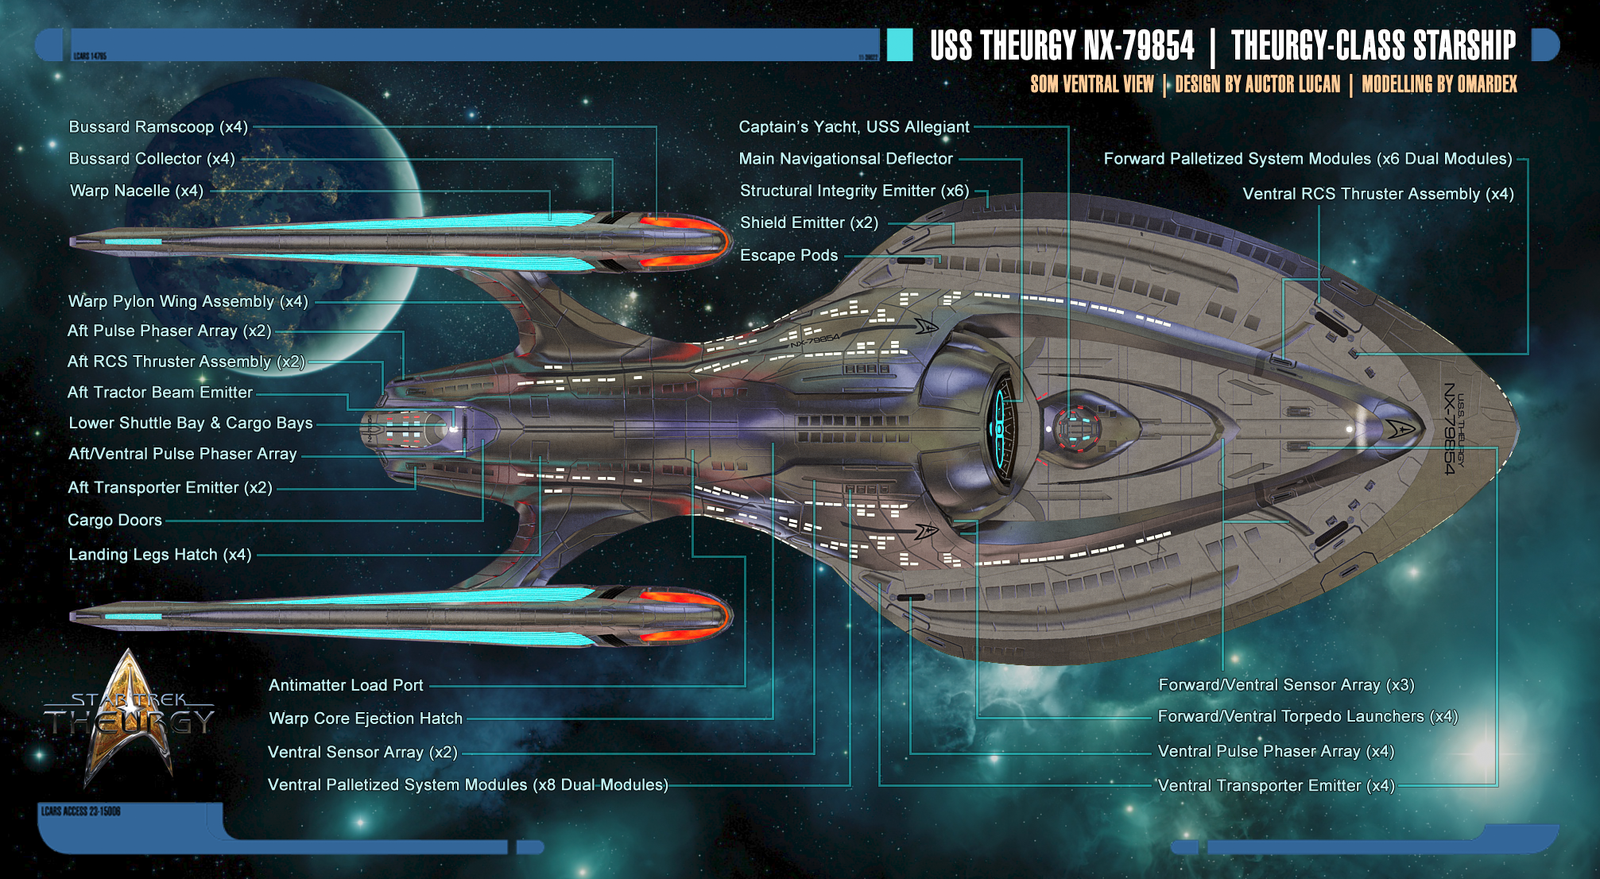 Theurgy Class Federation Starship Fan Trek The Omega